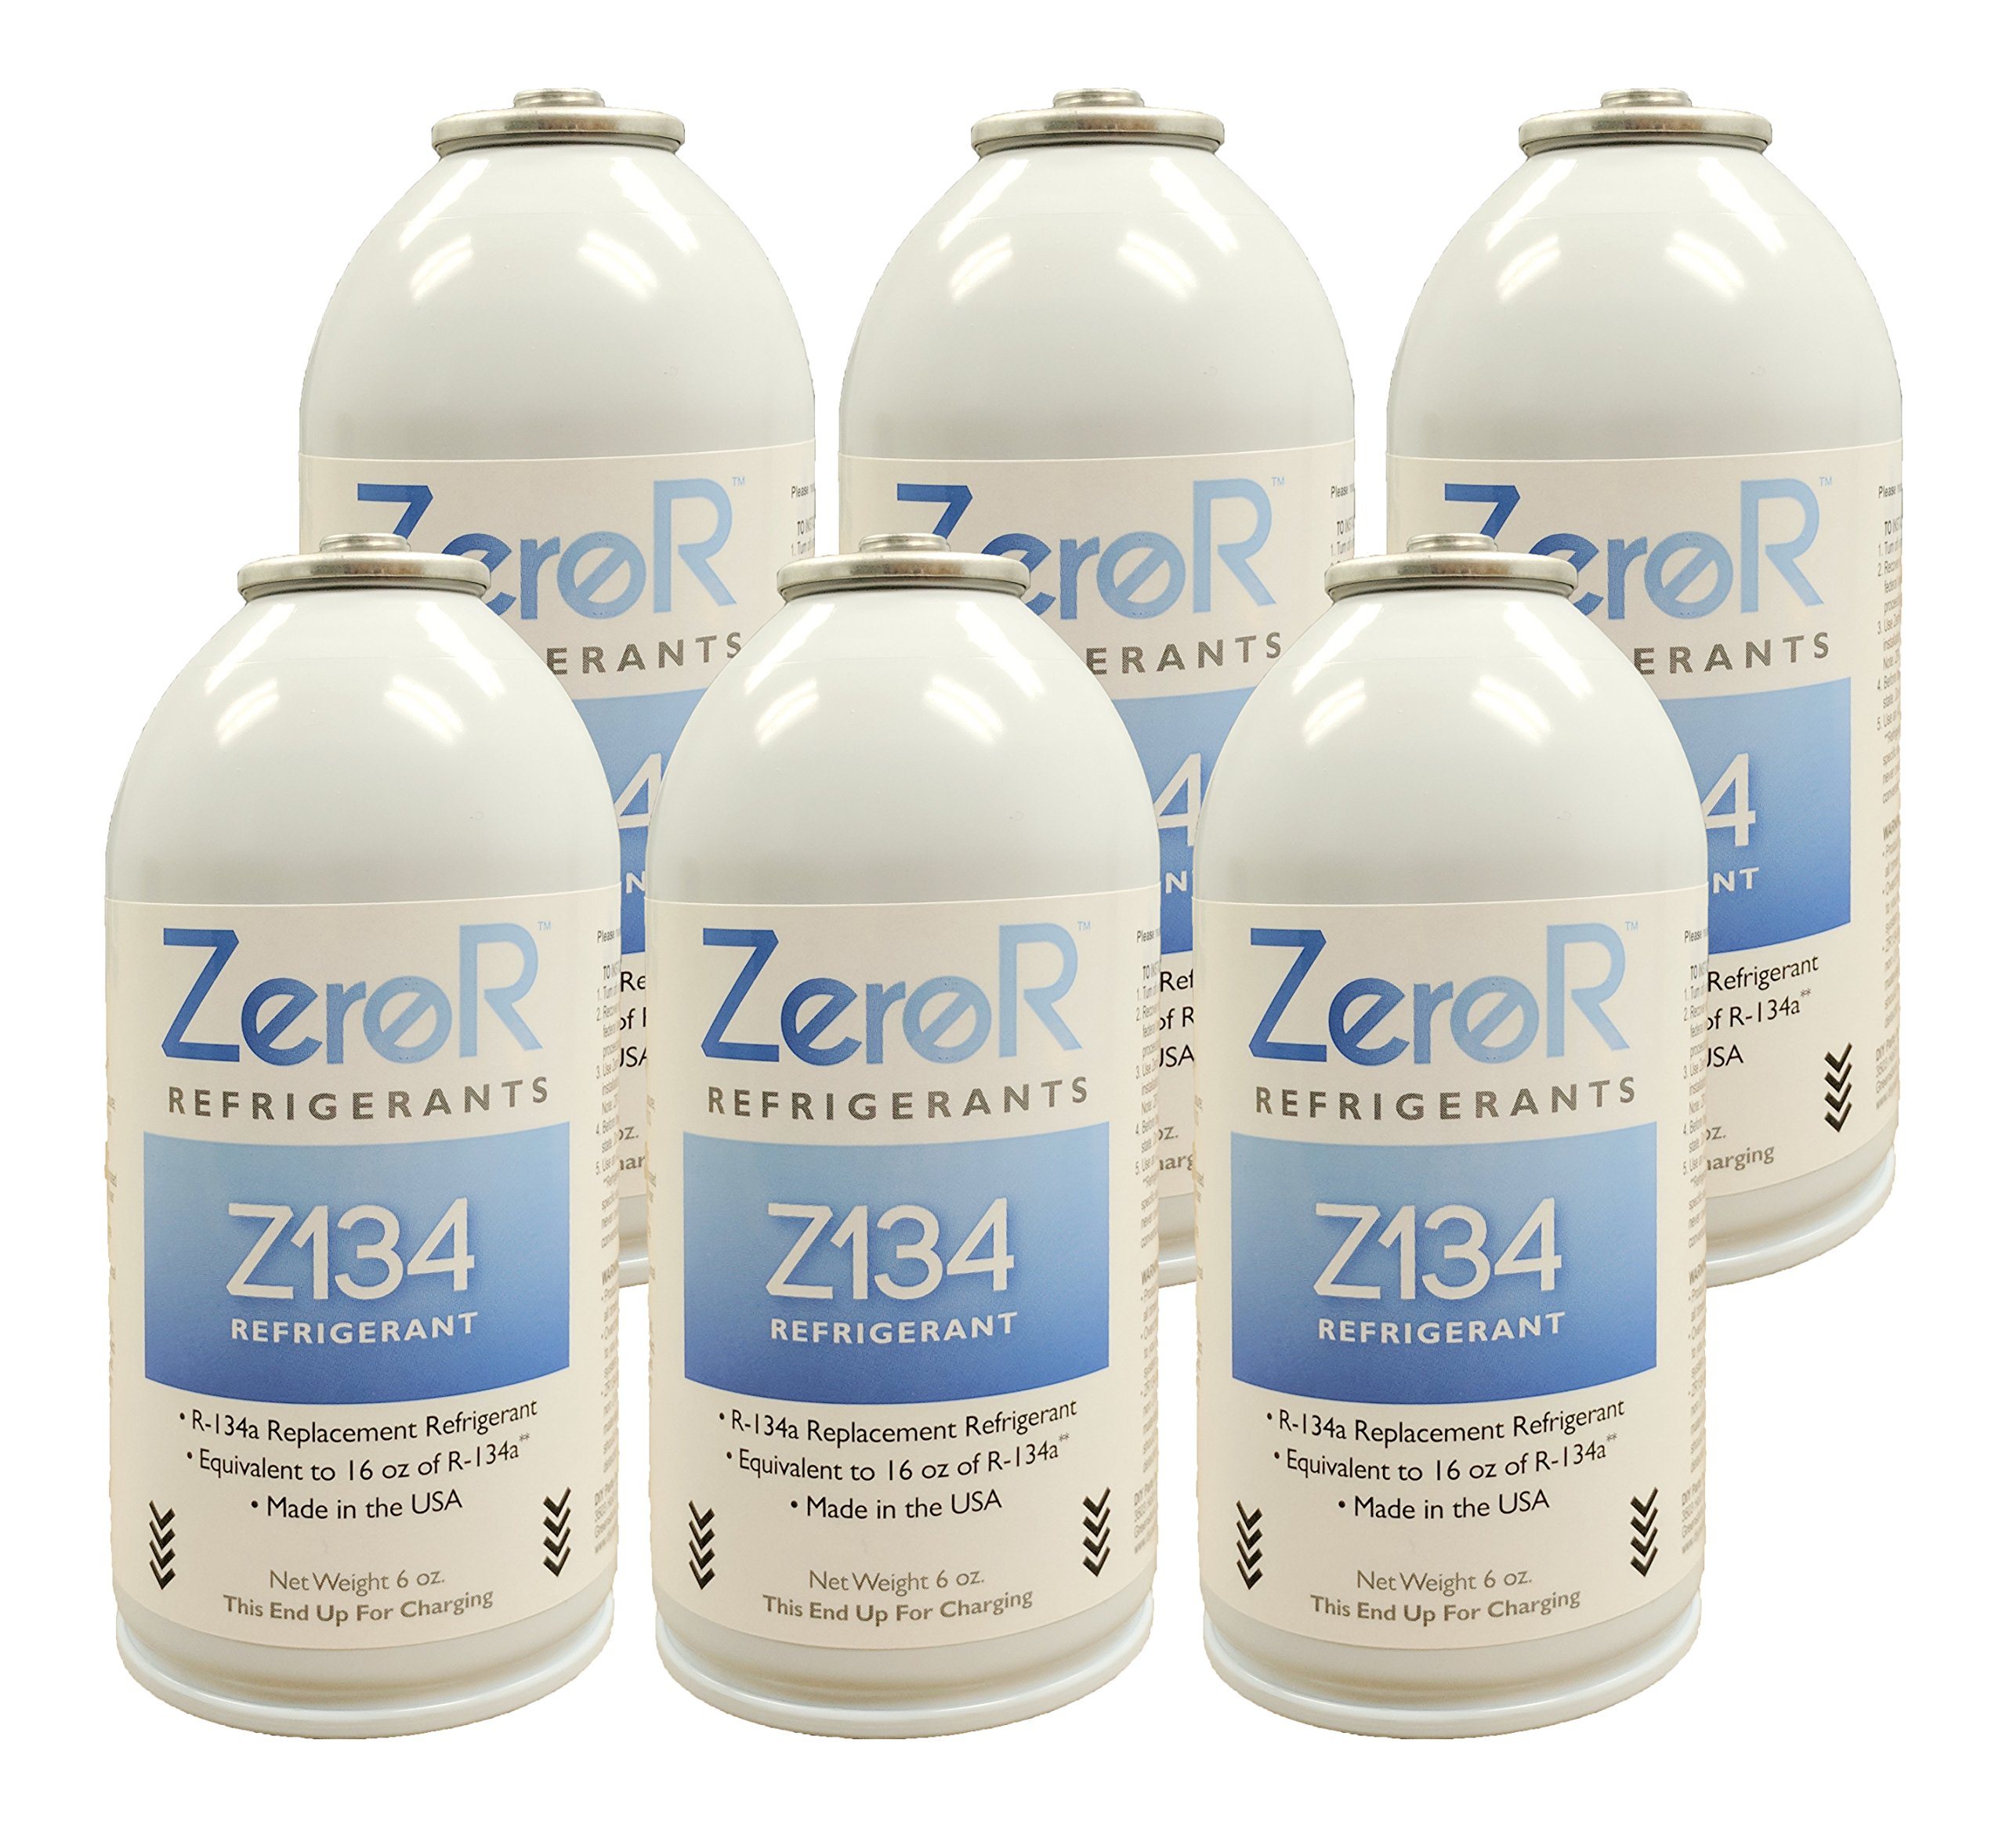 ZeroR Z134 Refrigerant - R134a Replacement - 6 Cans - Made in USA - Natural Non Ozone Depleting by ZeroR